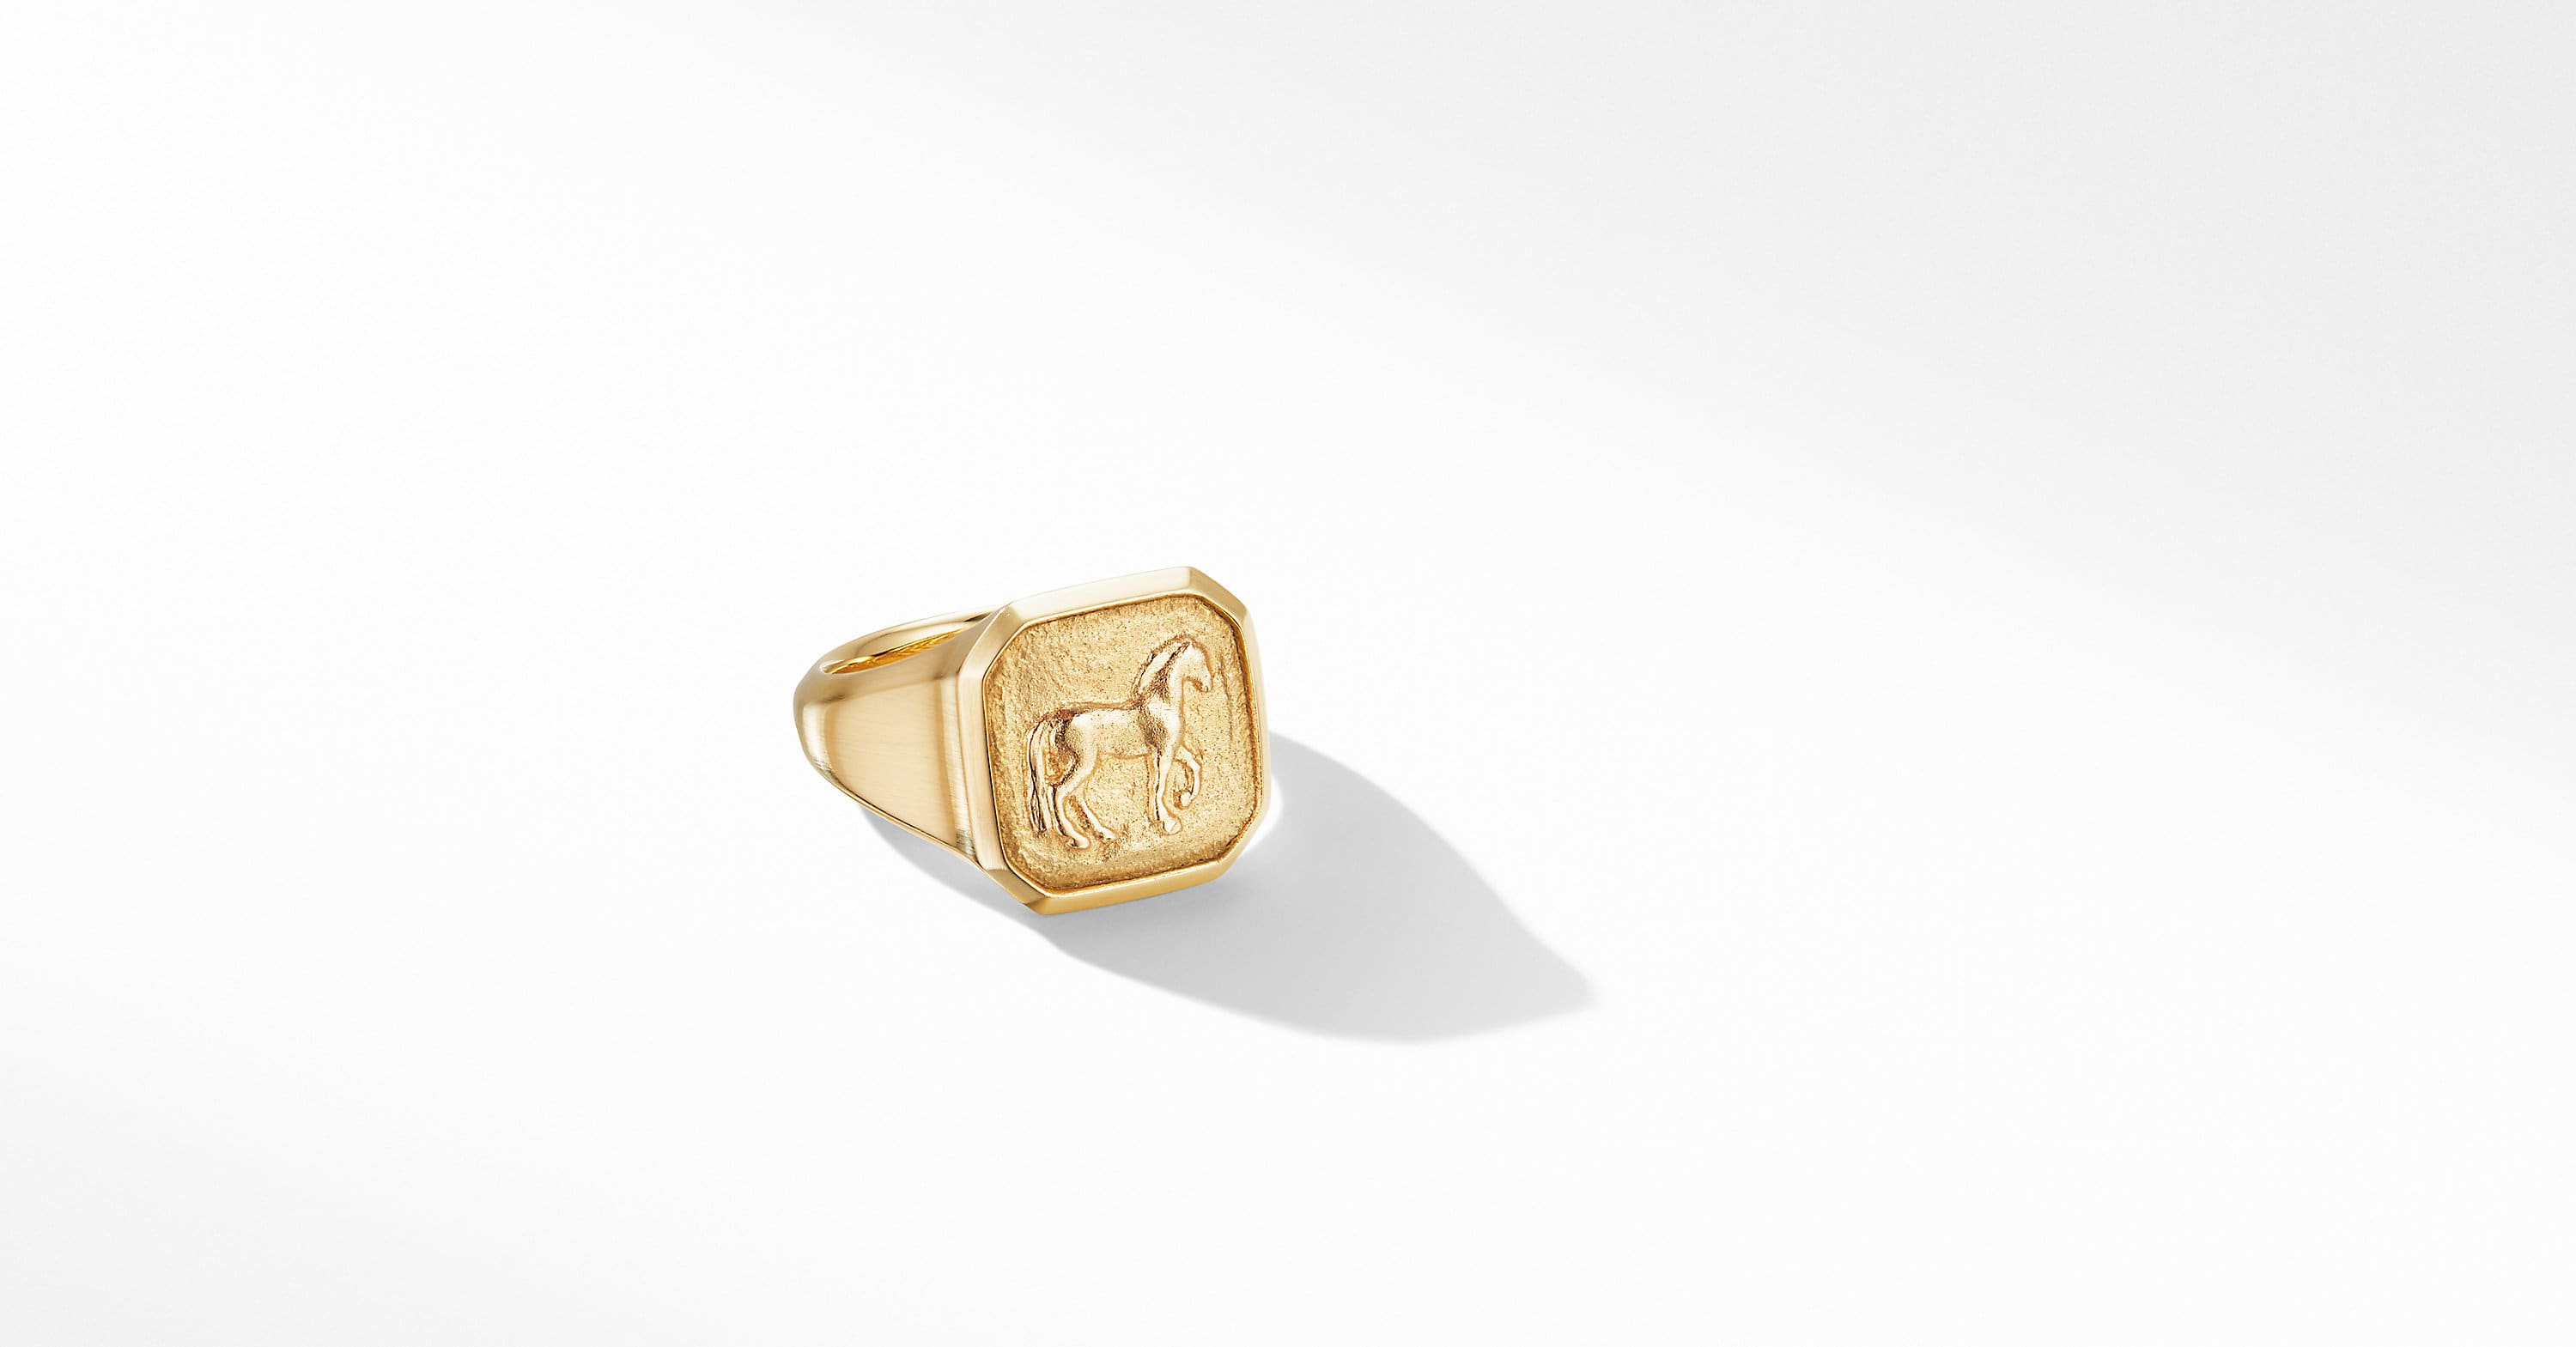 Petrvs Small Horse Pinky Ring in 18K Yellow Gold